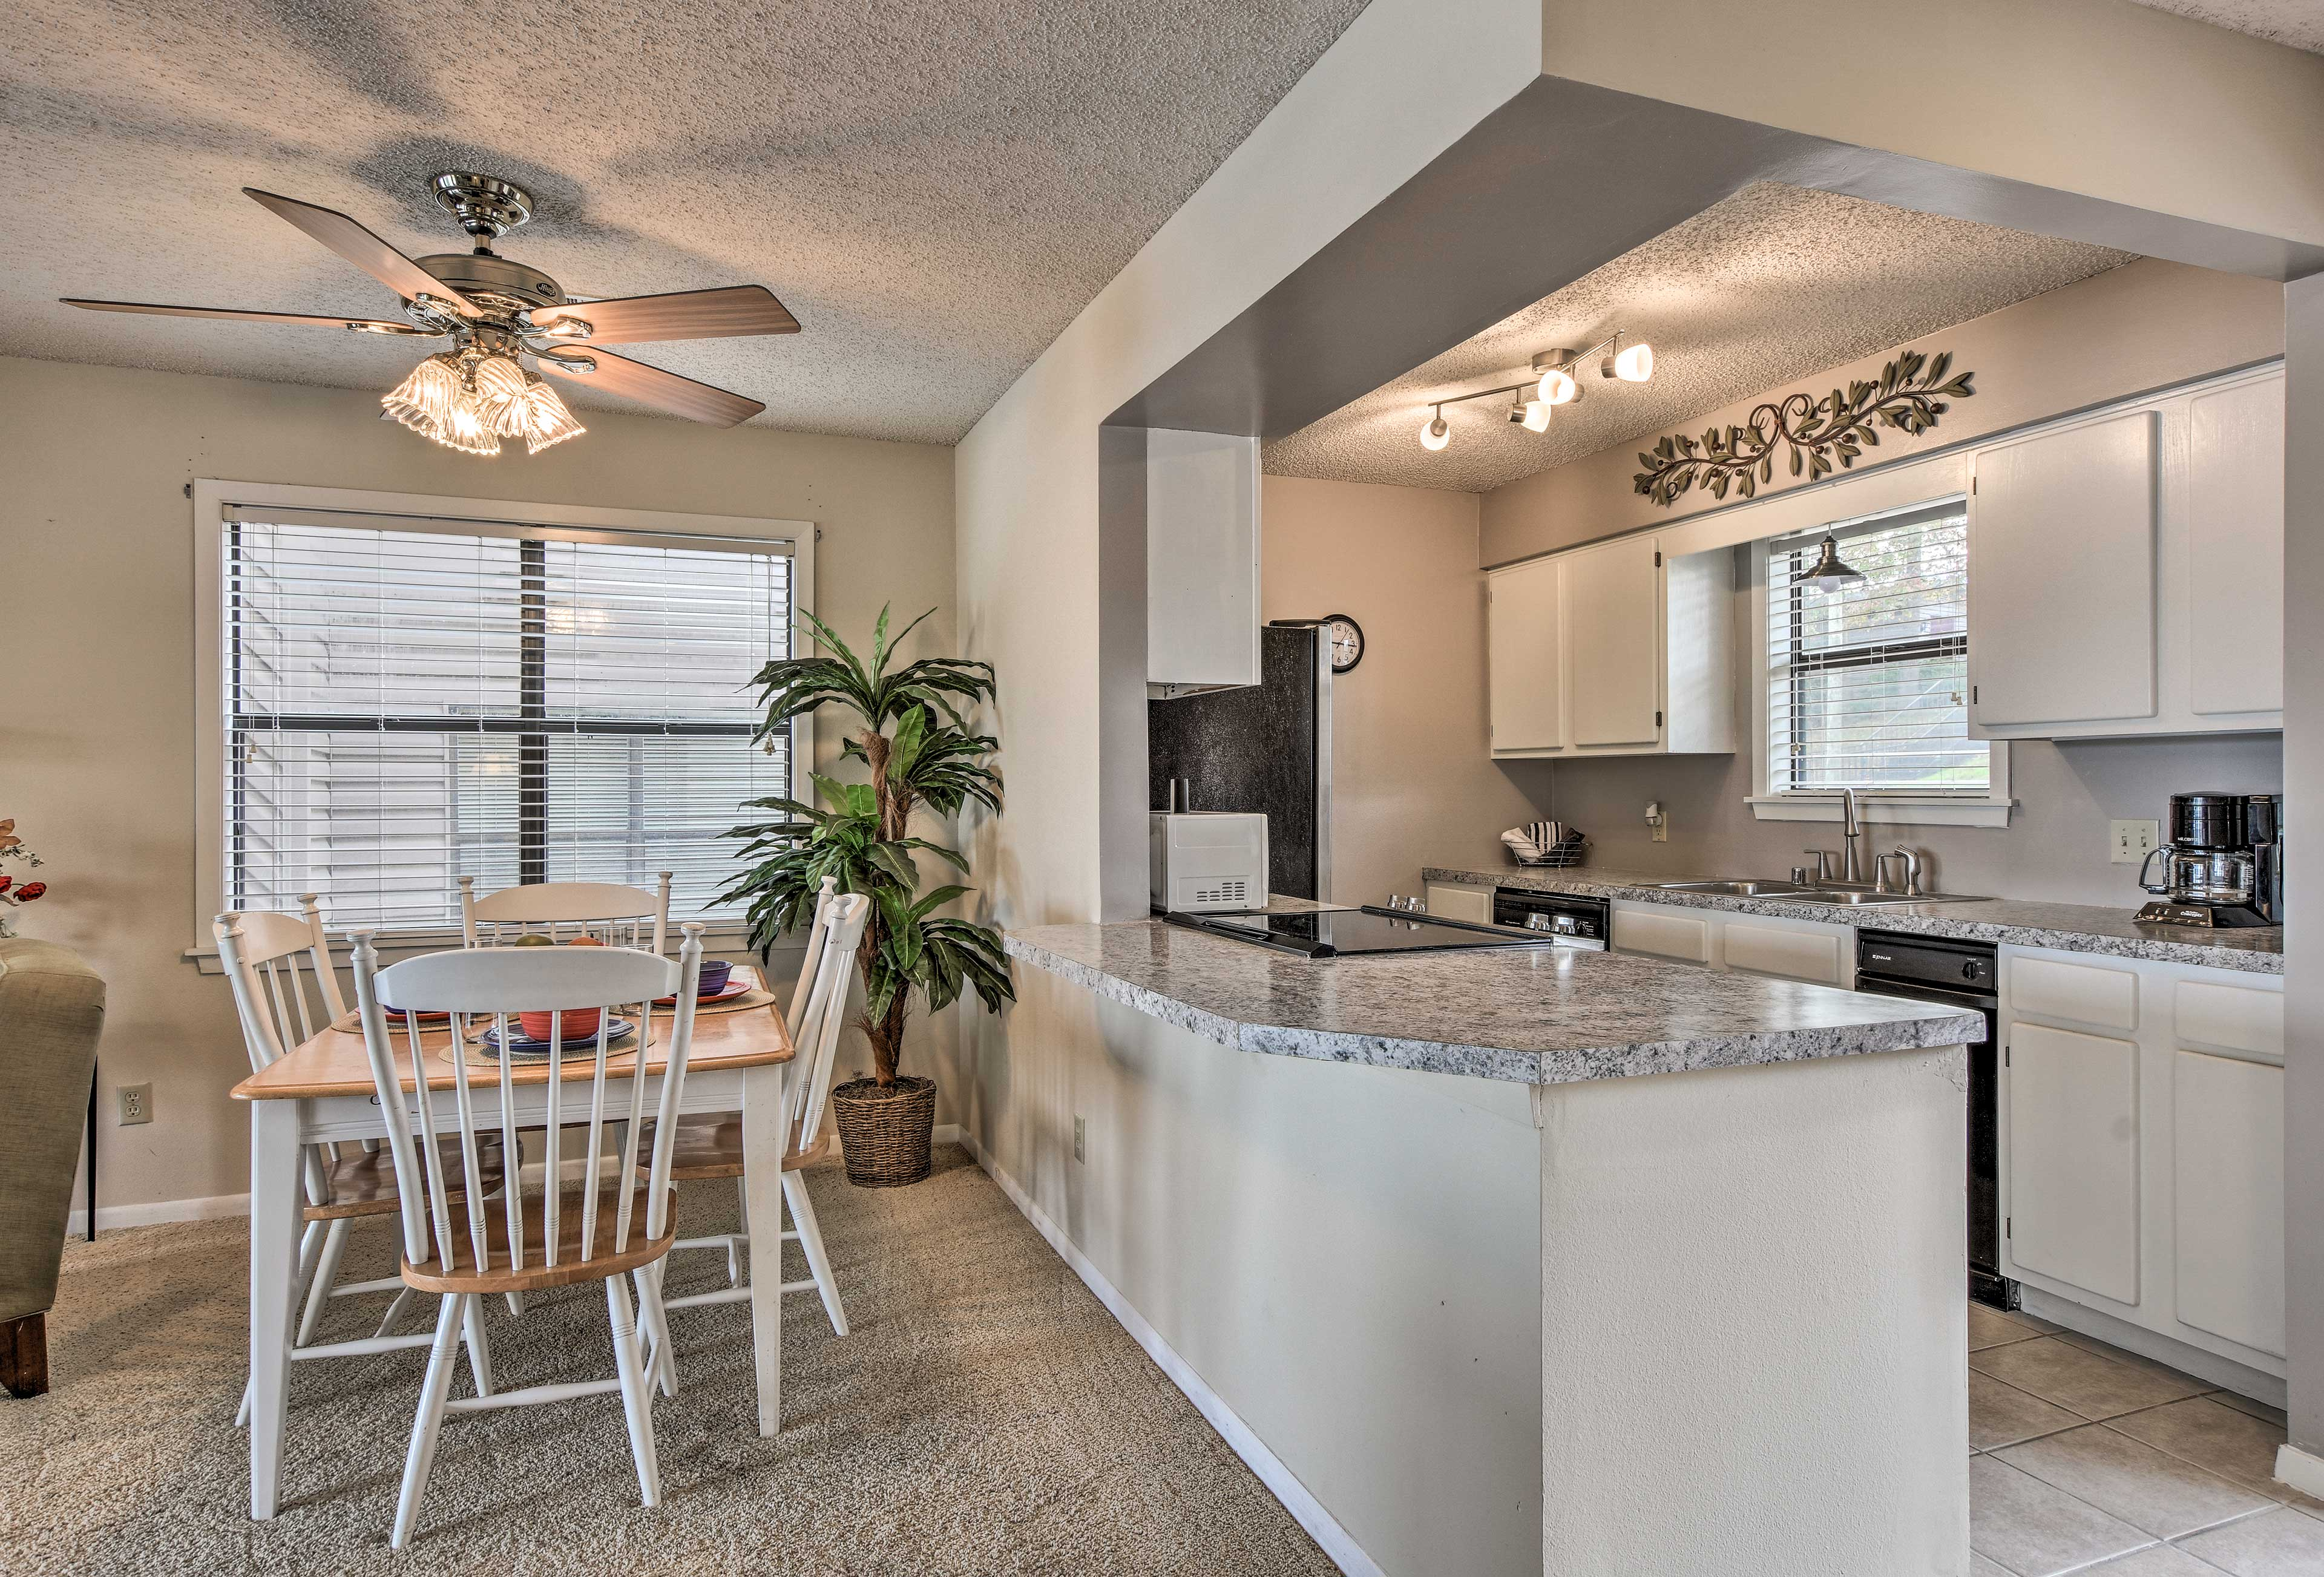 Try new restaurants or prepare meals in the fully equipped kitchen.